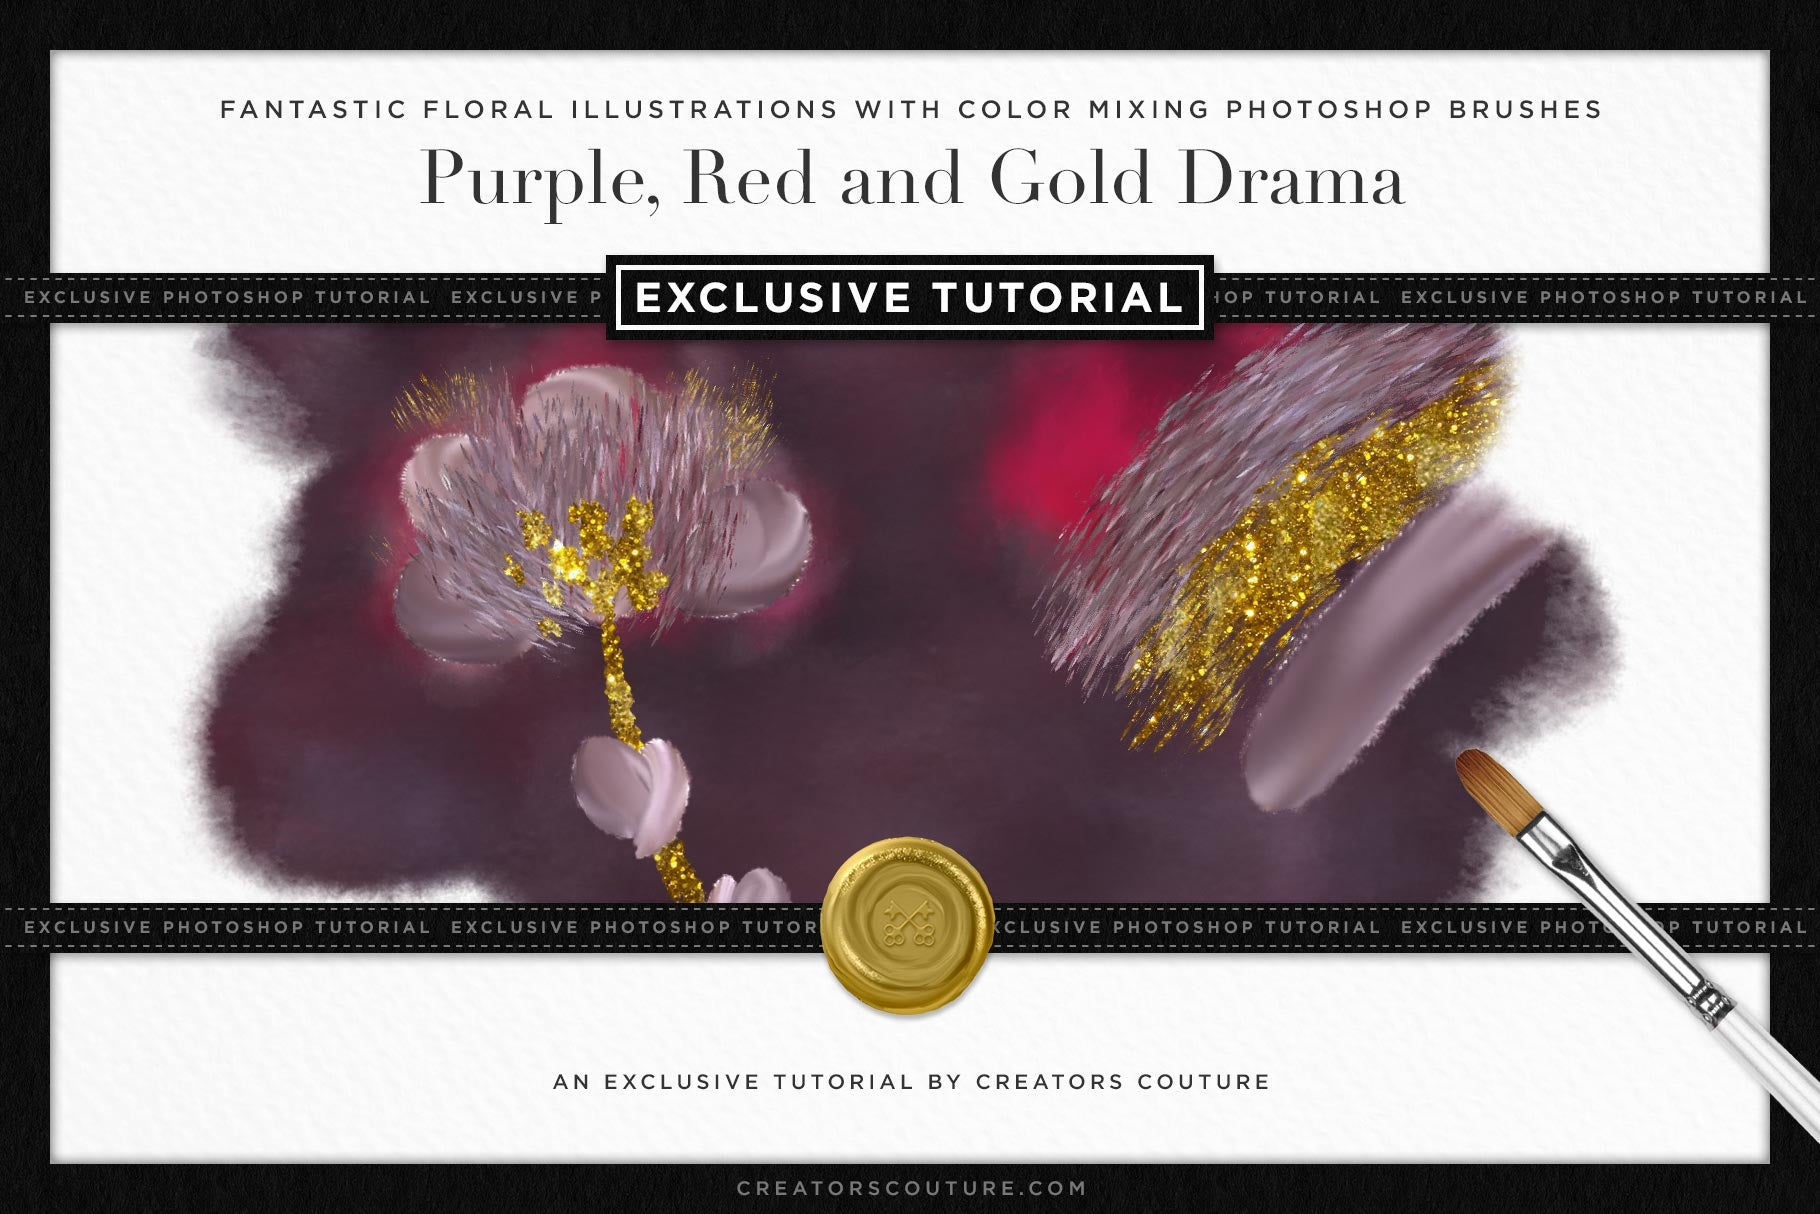 Fantastic Floral Illustrations with Color Mixing Photoshop Brushes | Purple, Red and Gold Drama - Creators Couture